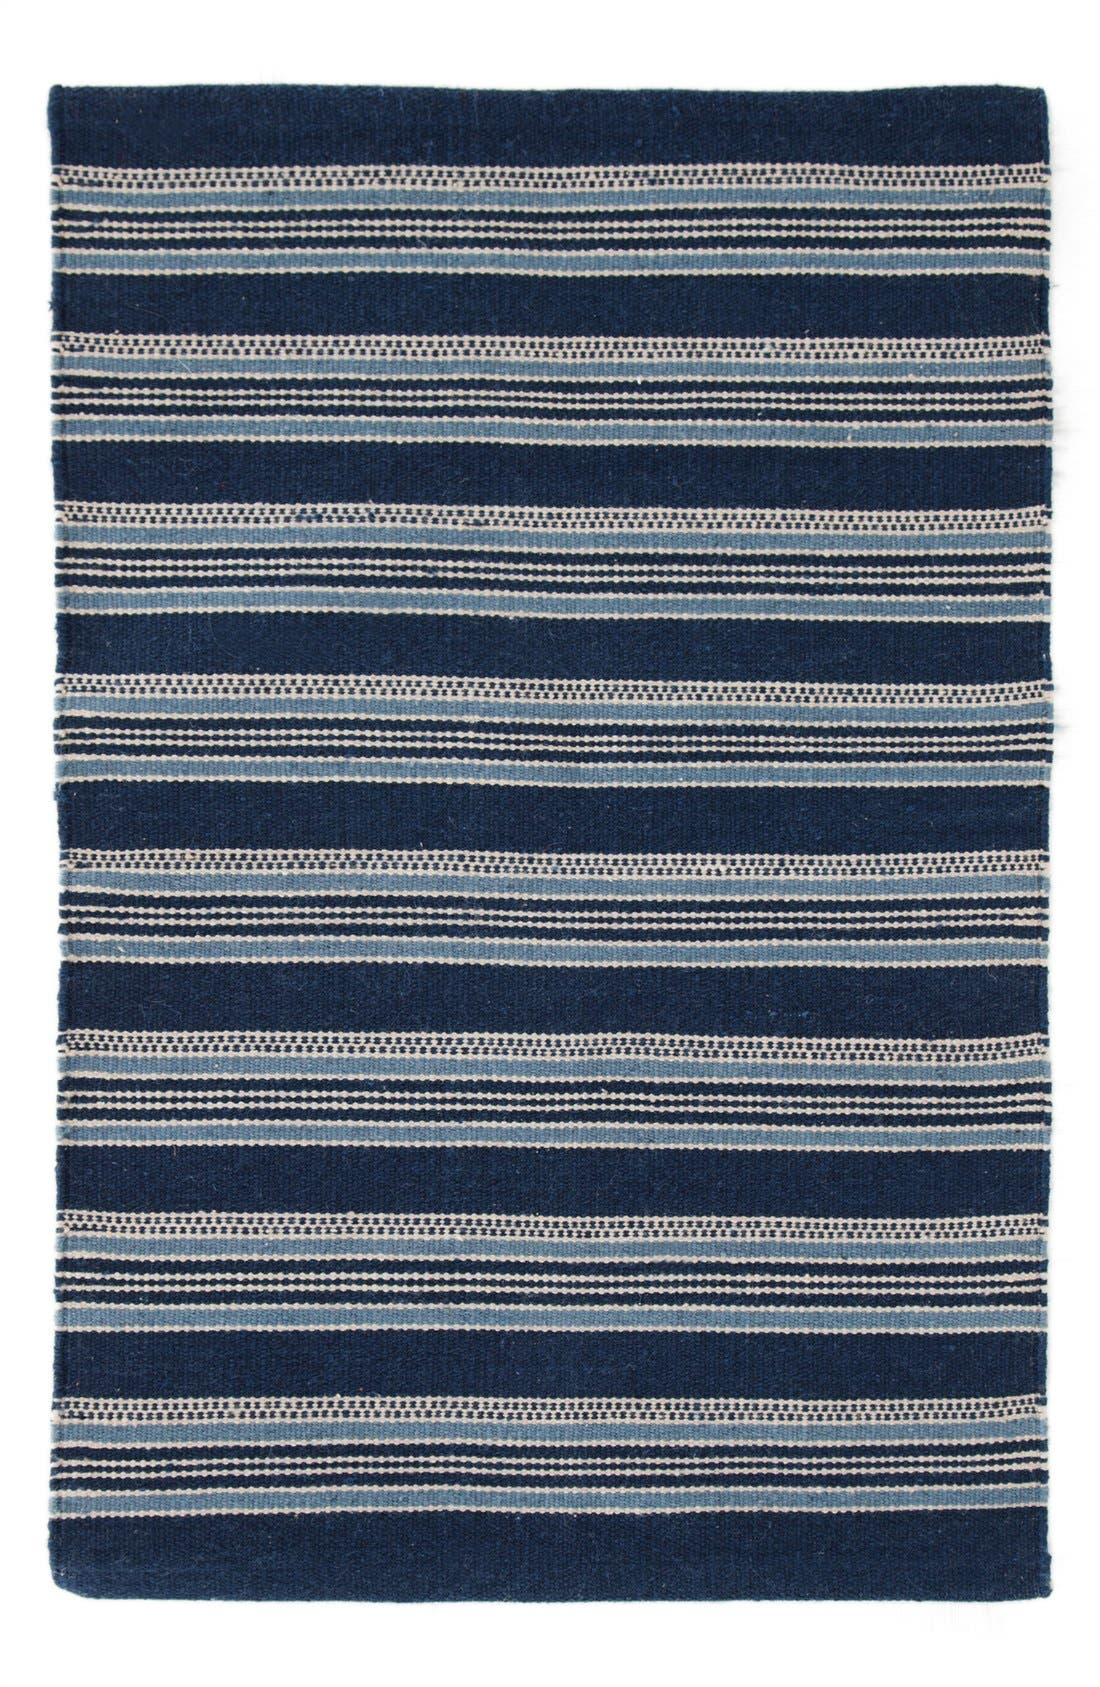 'Cameroon' Indoor/Outdoor Rug,                             Main thumbnail 1, color,                             BLUE/ MULTI